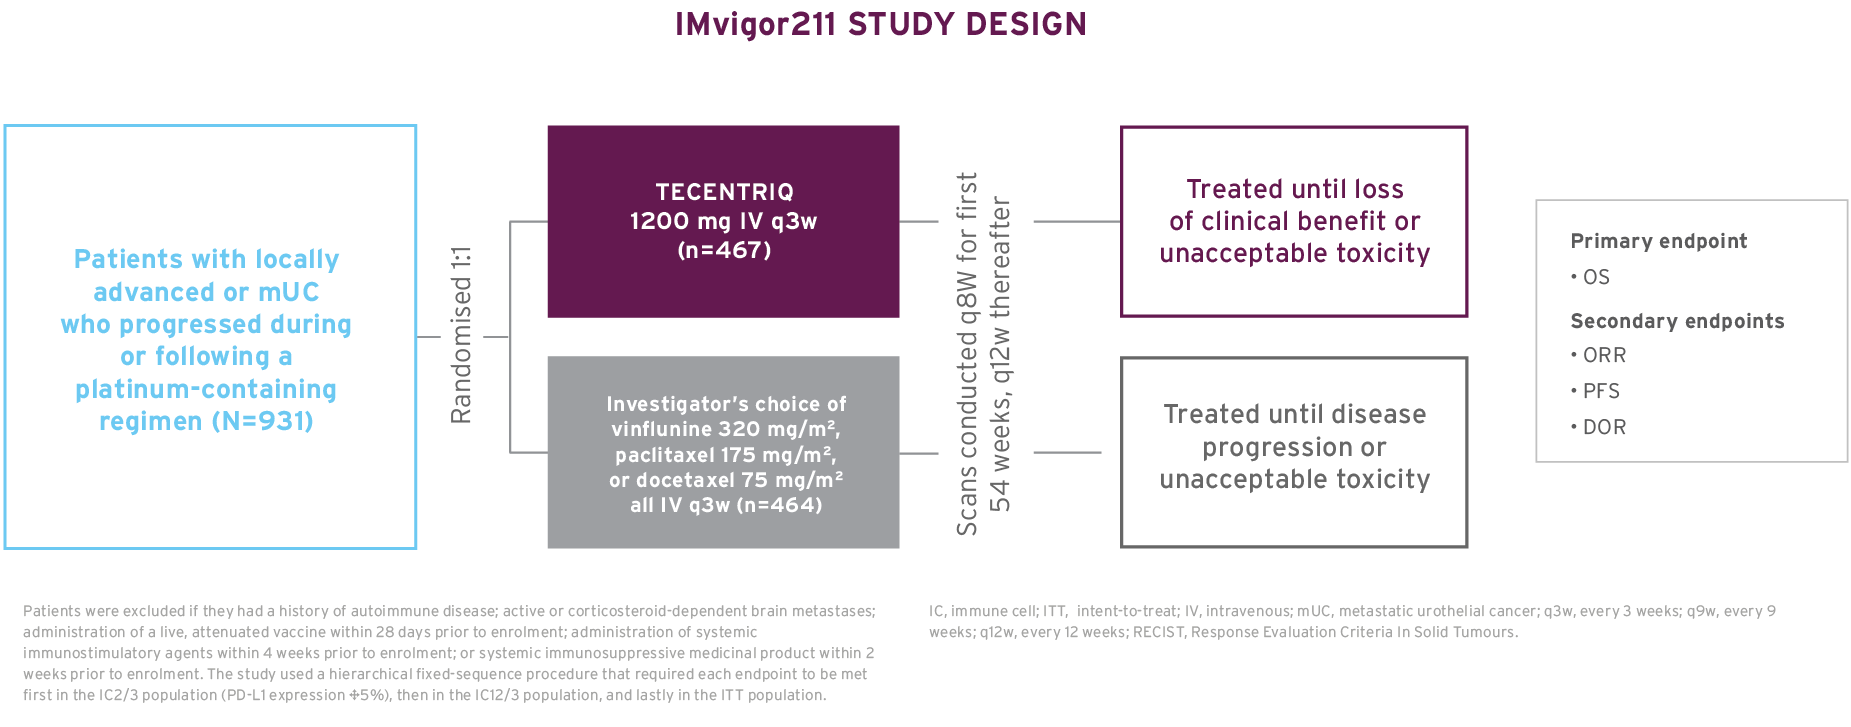 The study design of IMvigor211, a Phase 3 trial in pre-treated mUC.